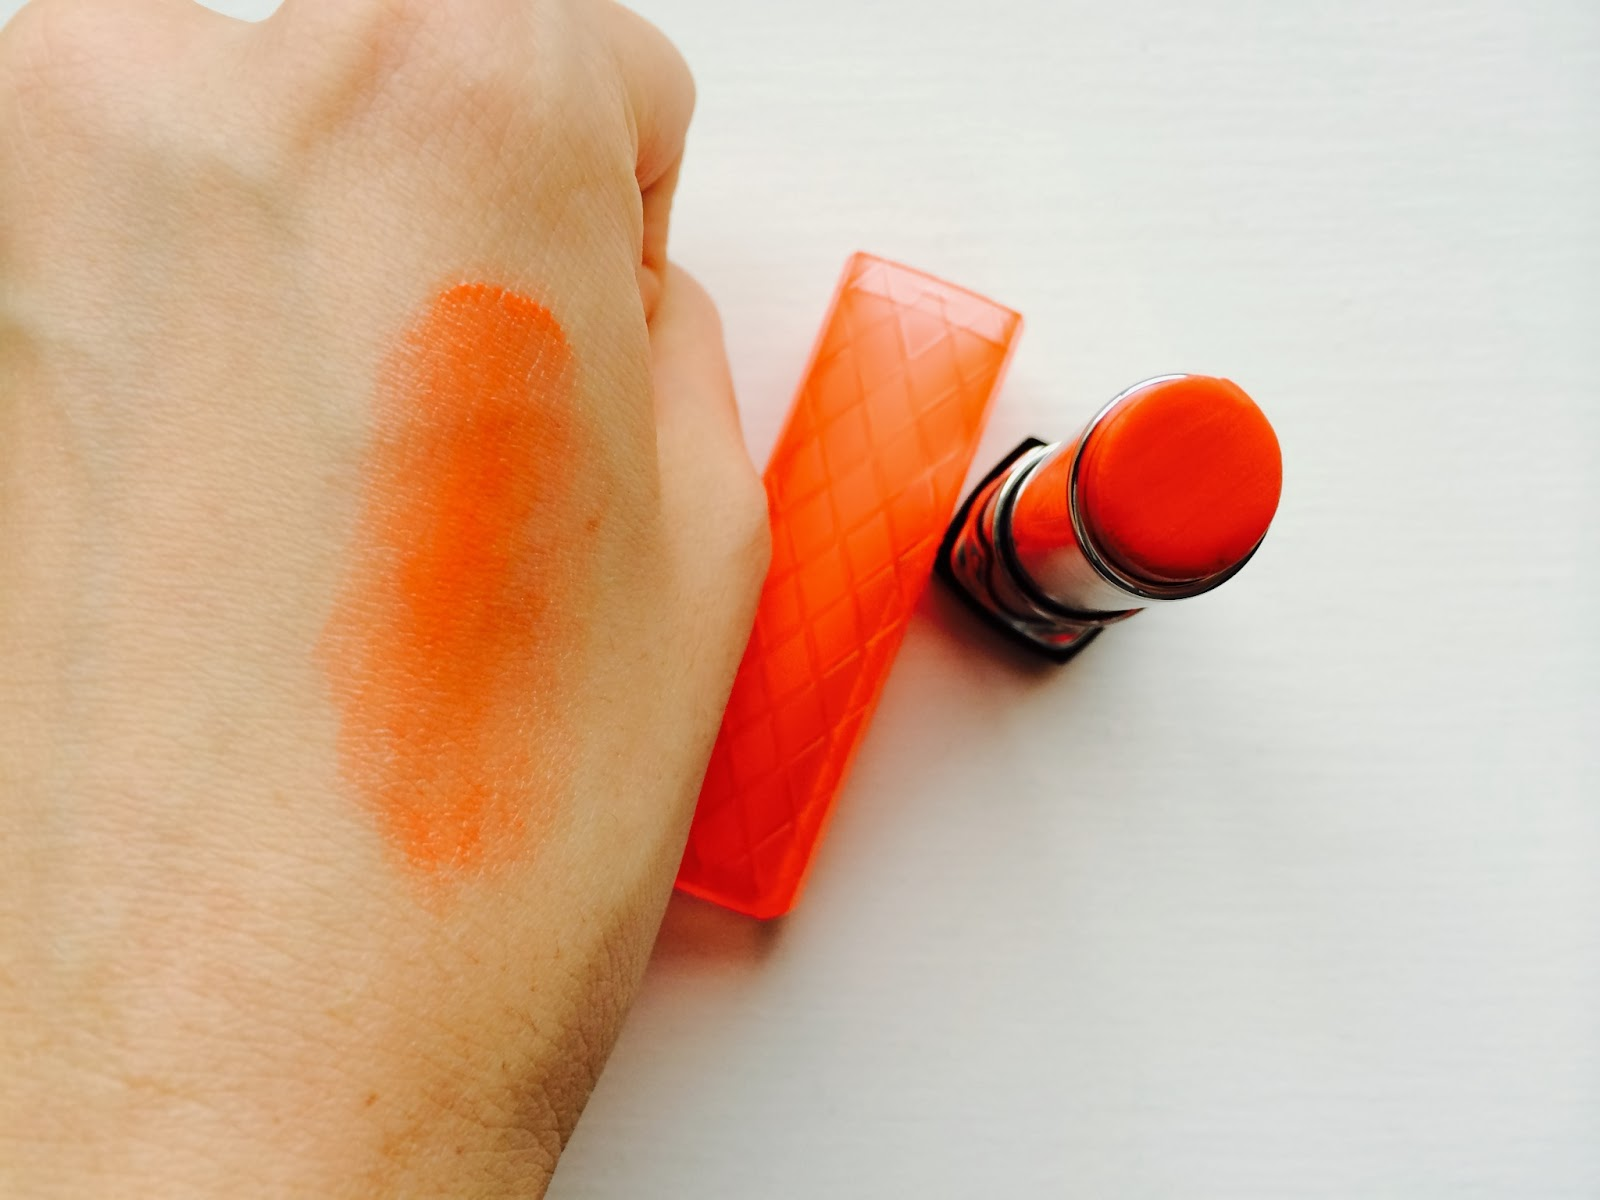 REVLON'S COLORBURST LIP BUTTERS